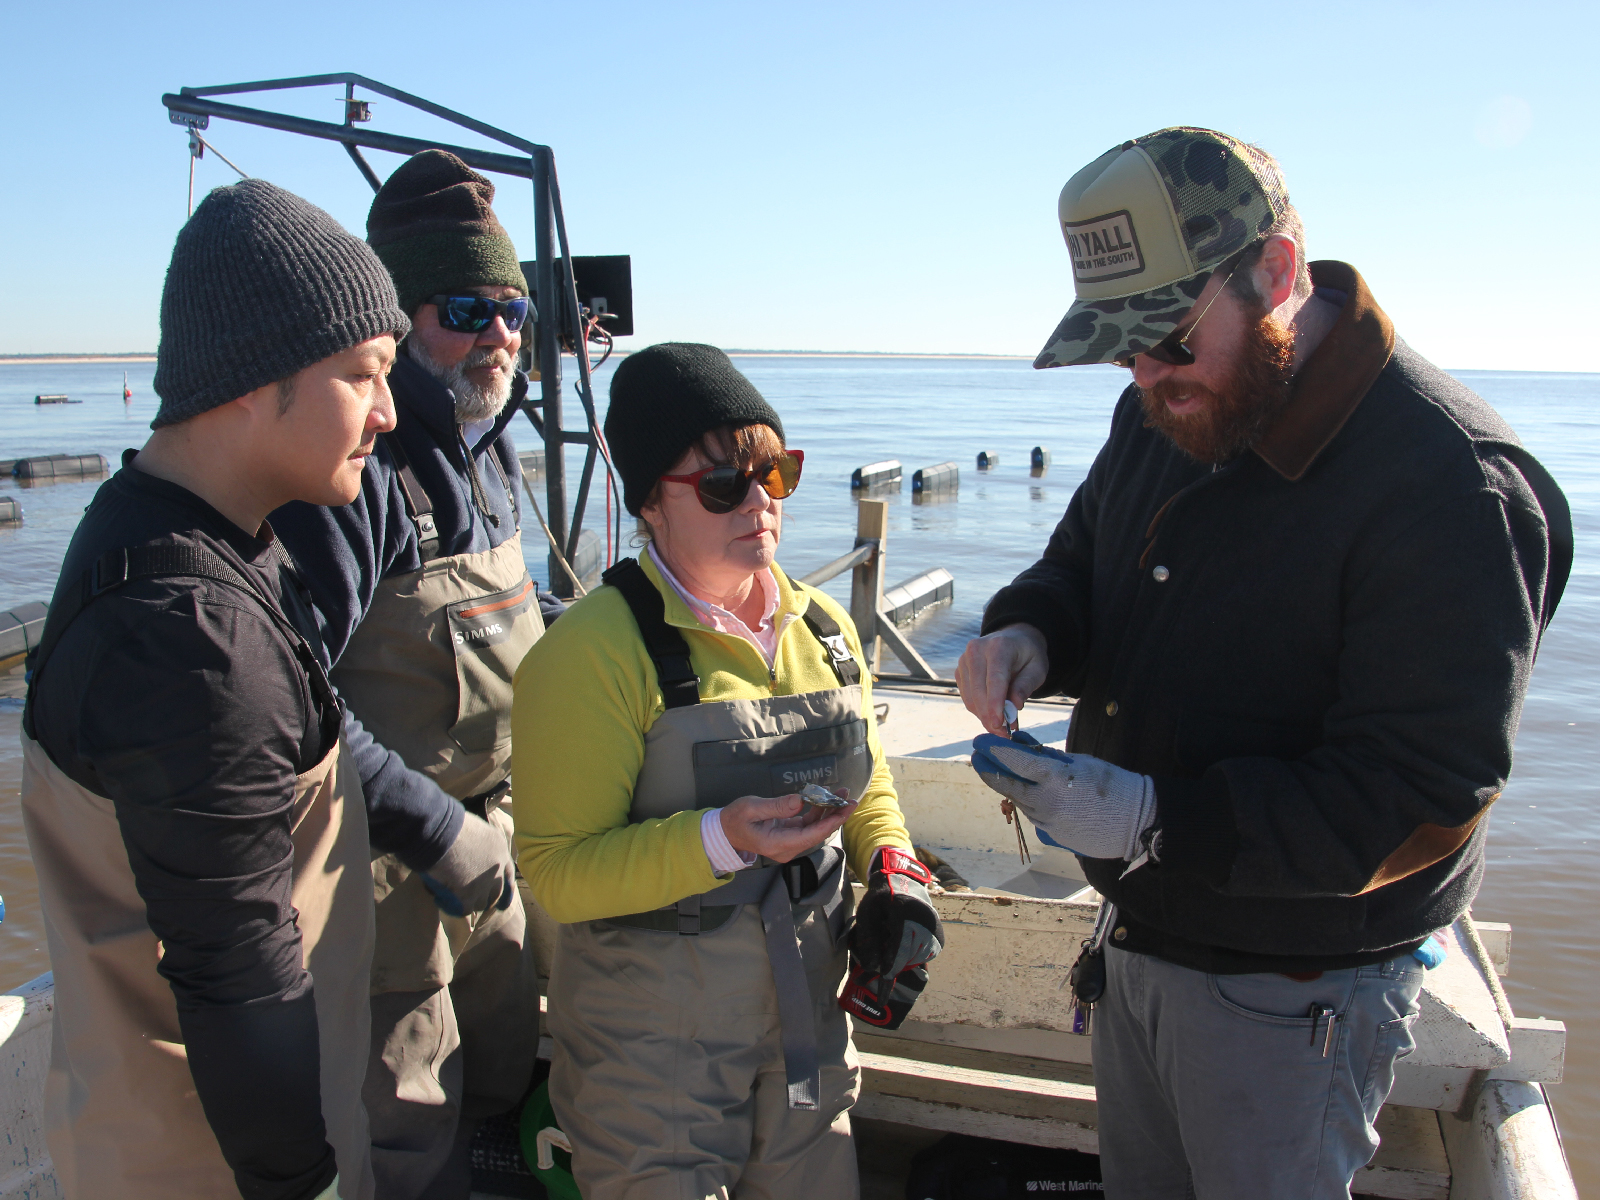 Anita Arguelles and Chef Austin Sumrall inspect a catch.